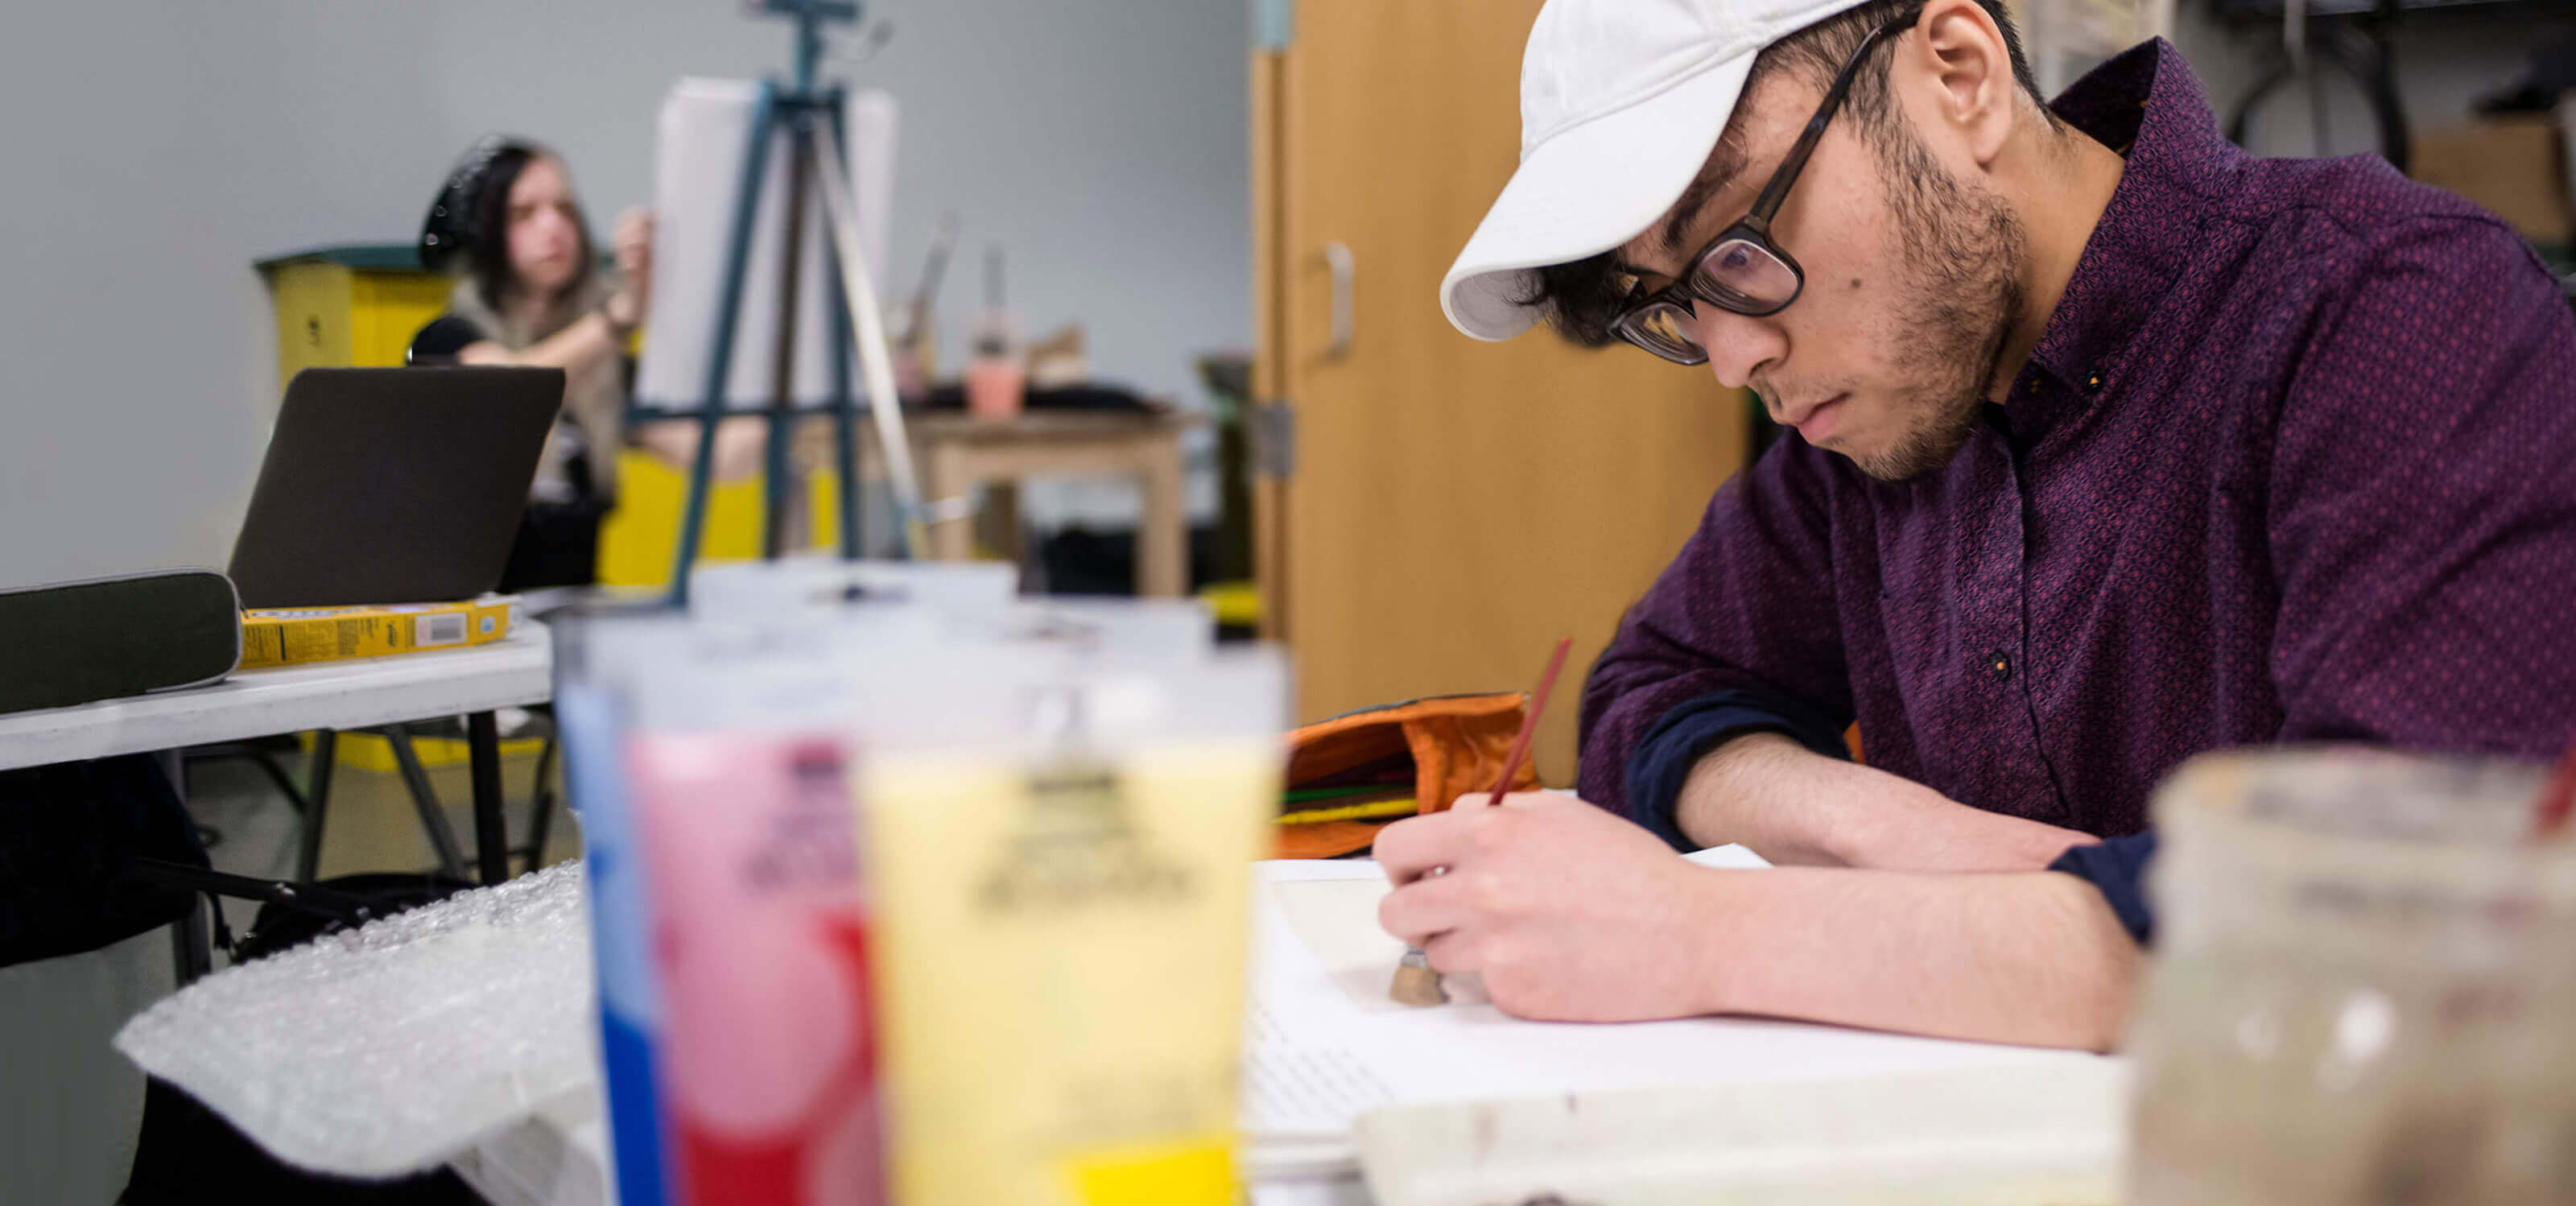 A man looks intently at the paint he is applying to a piece of paper. A woman in the background is painting with an easel.